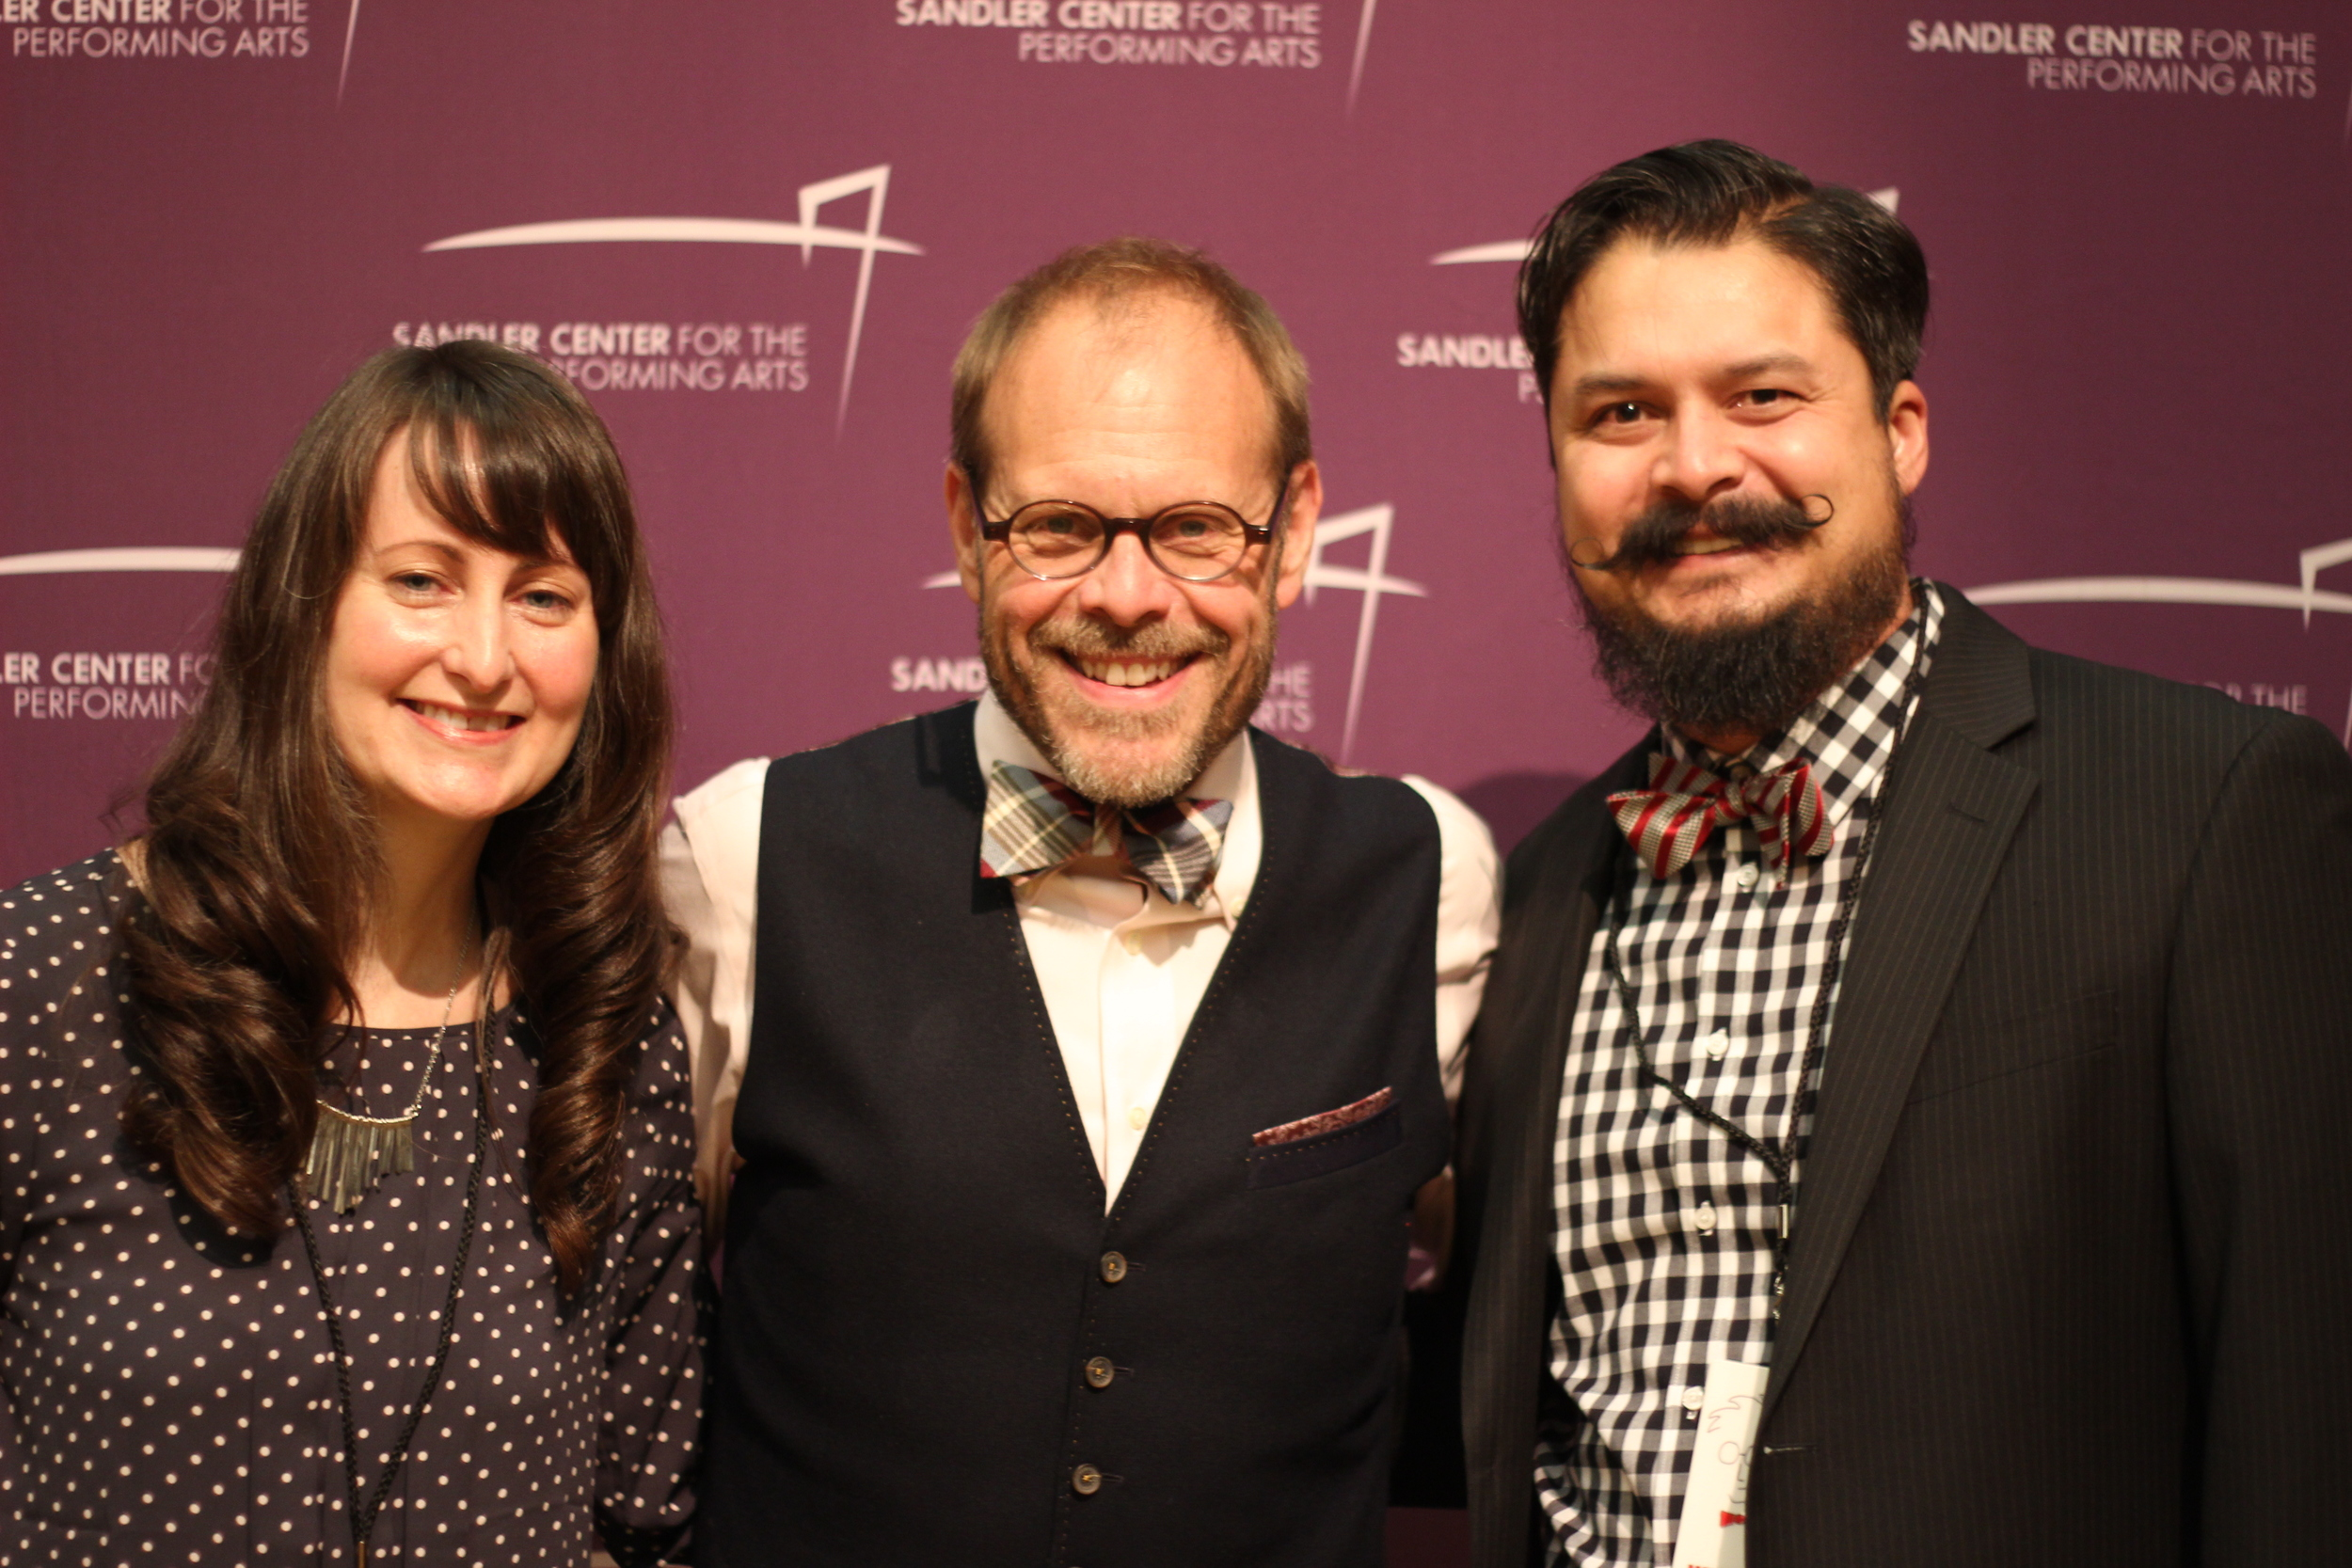 Shelby, Alton Brown, and me!